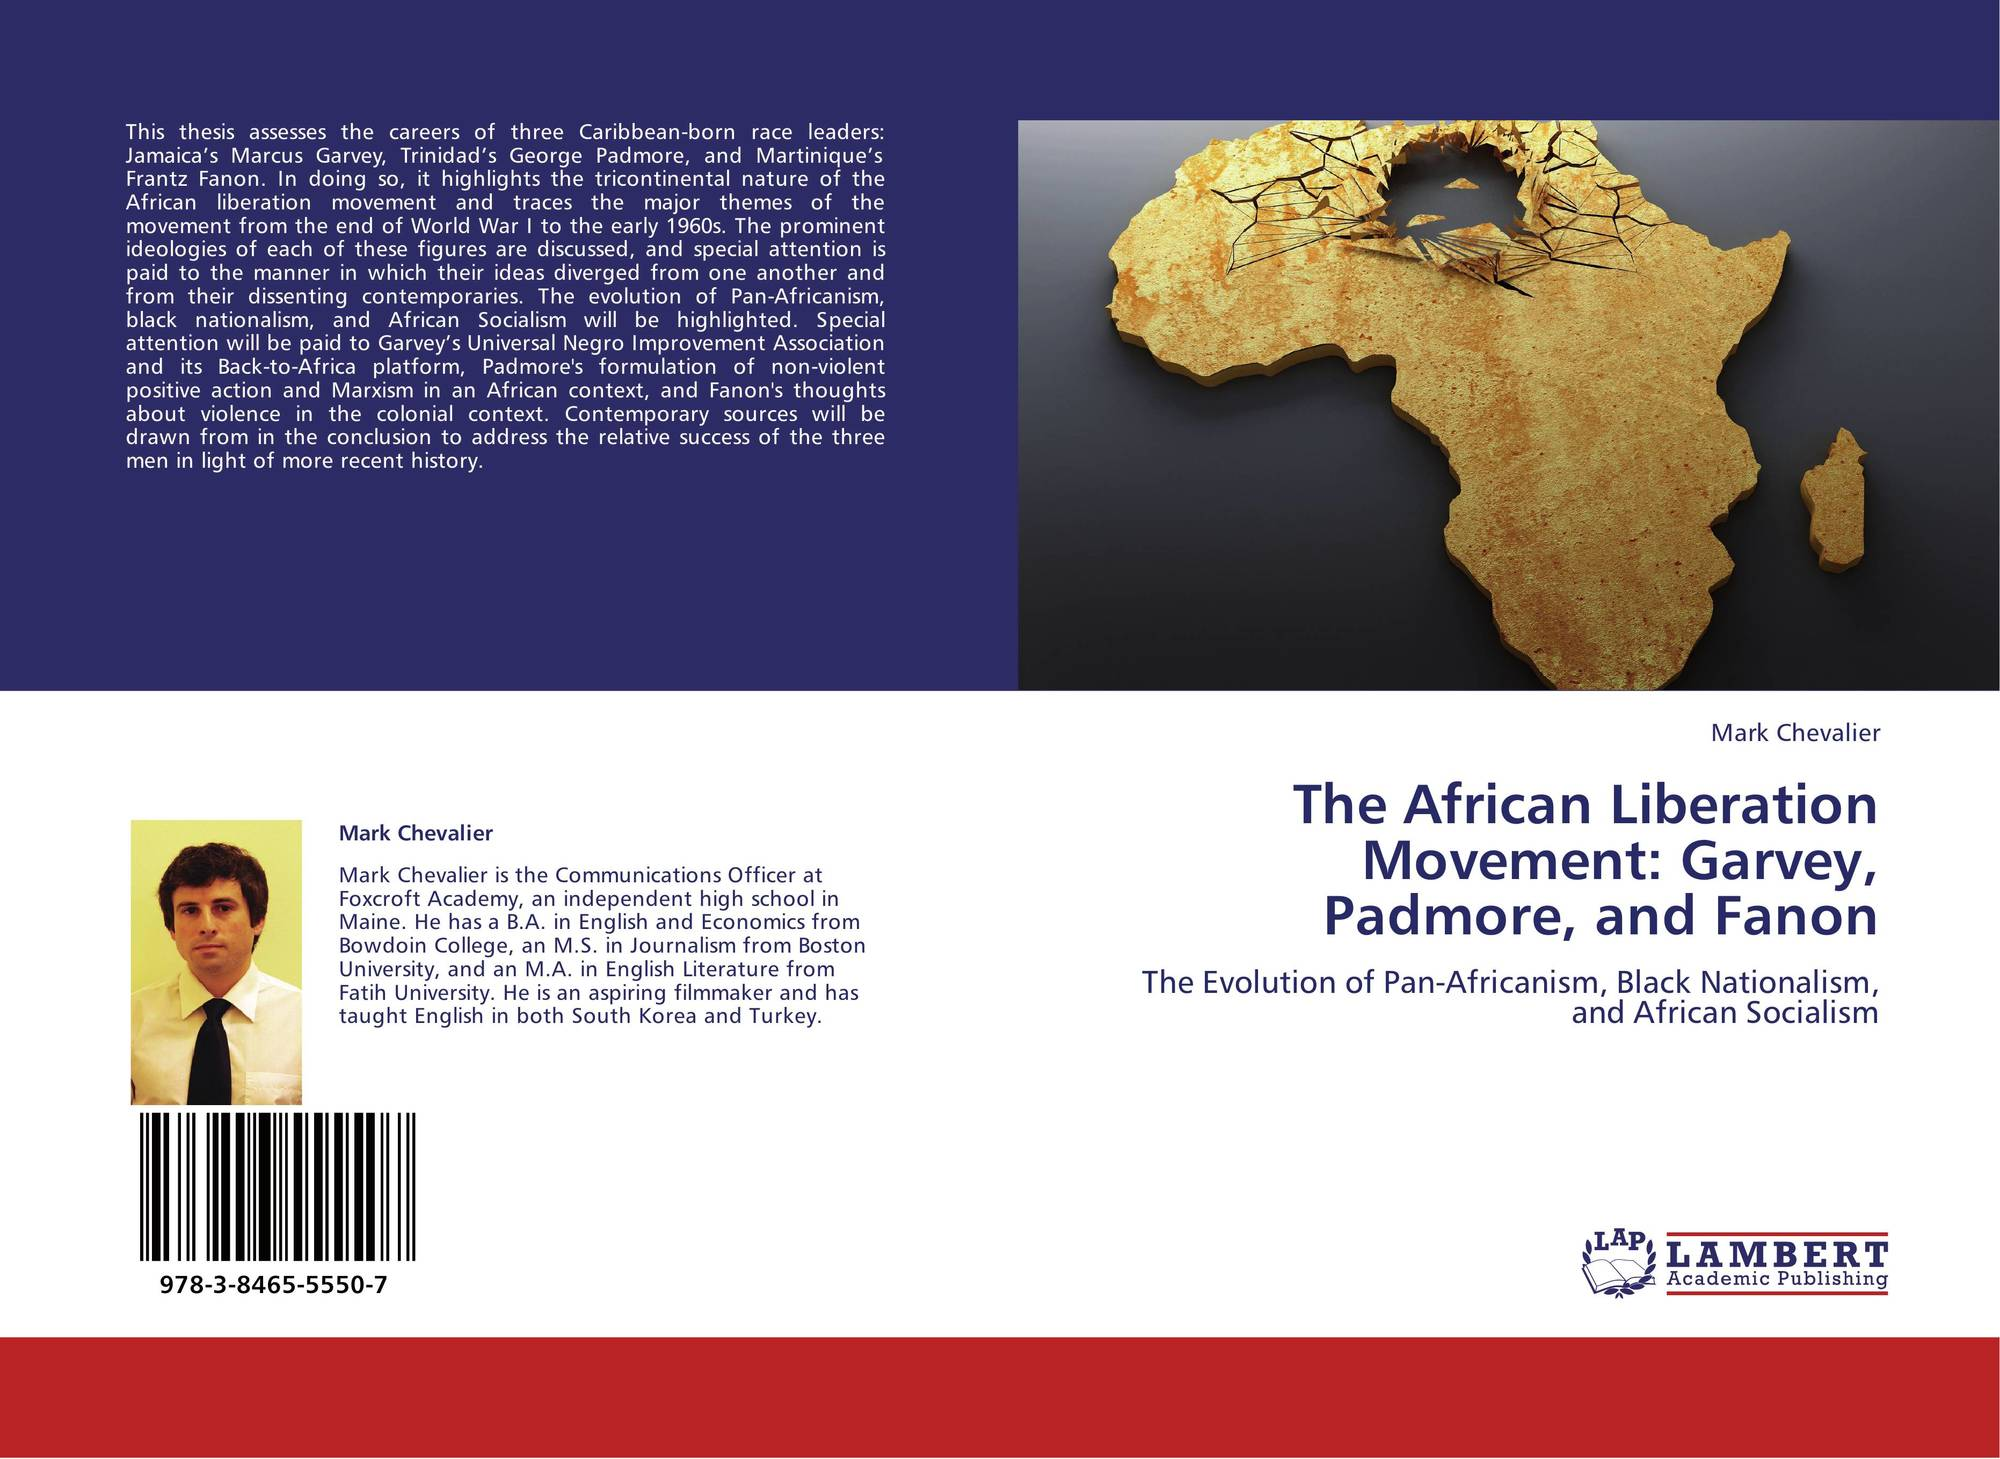 garvey dubois and pan africanism Pan africanism as sub-africanicity in the united states / rhett jones --aime cesaire, leopold senghor, and the concept of black aesthetics / larry ross --a second emancipation : the : the transfiguration of garvey's racial empire in rastafarian thought / gregory stephens --the 1959 campaign of web du bois for the united states senate.